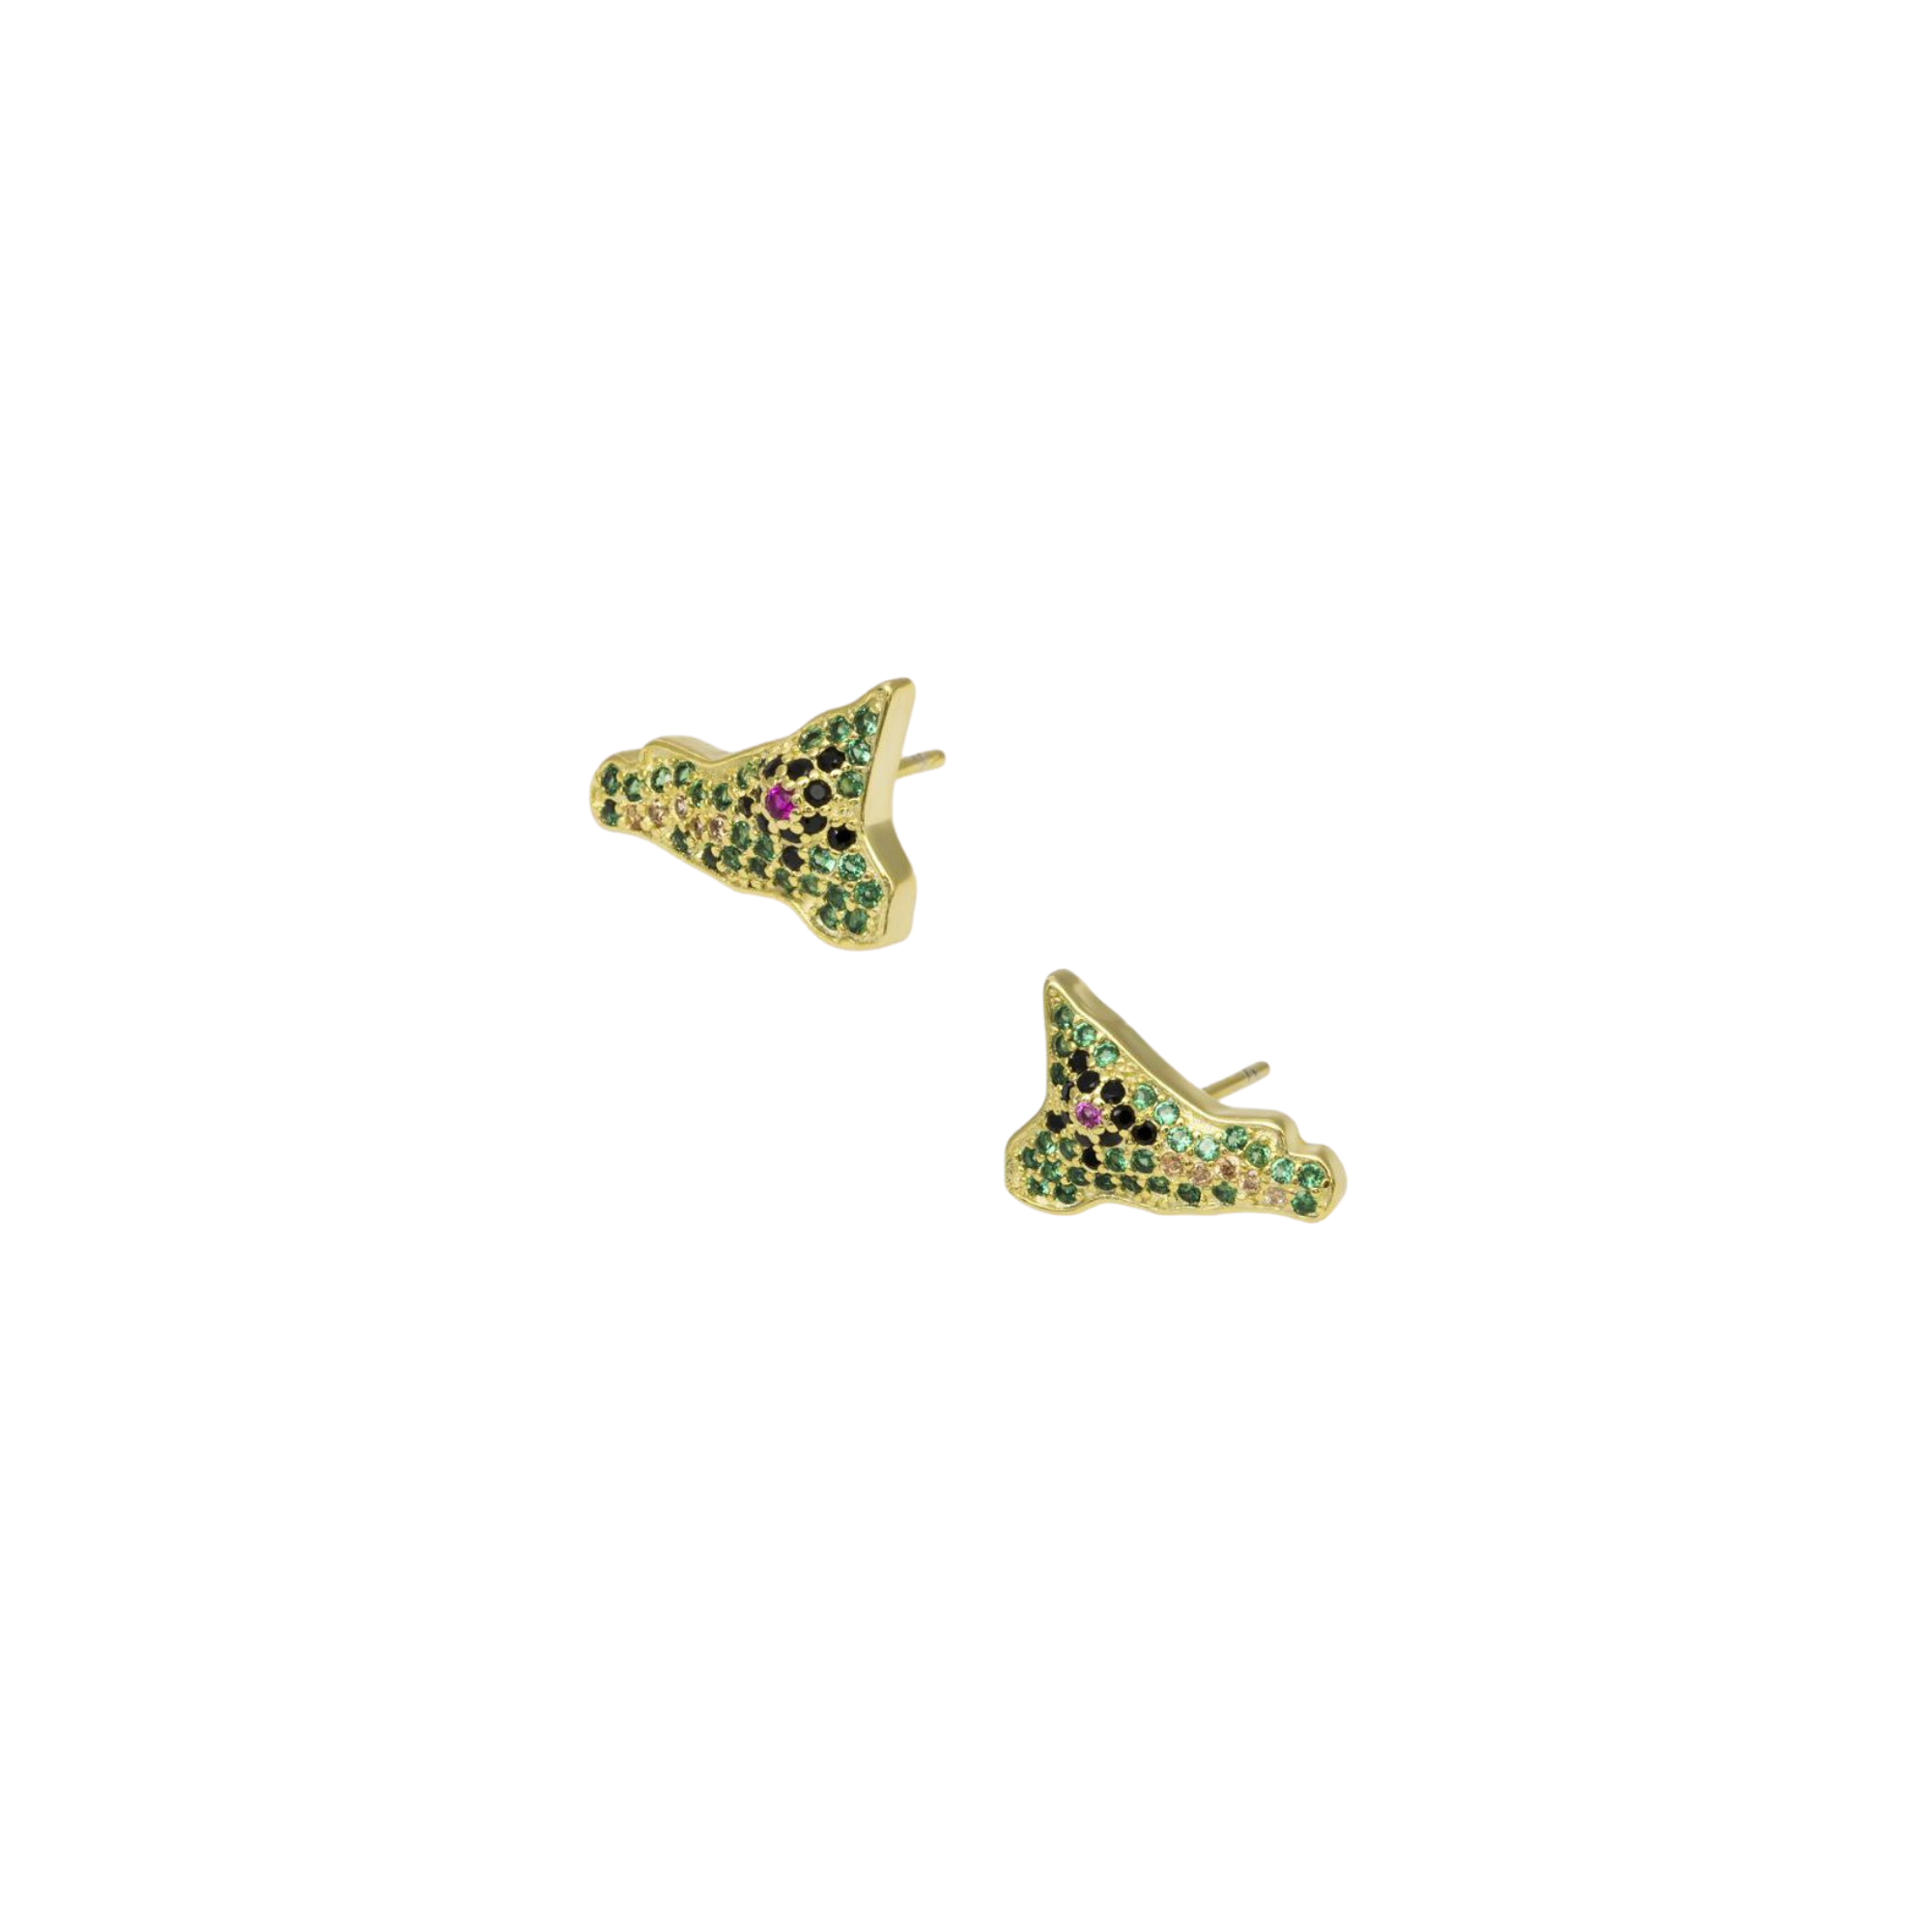 M'ami Sicily Earrings - MSE512/G